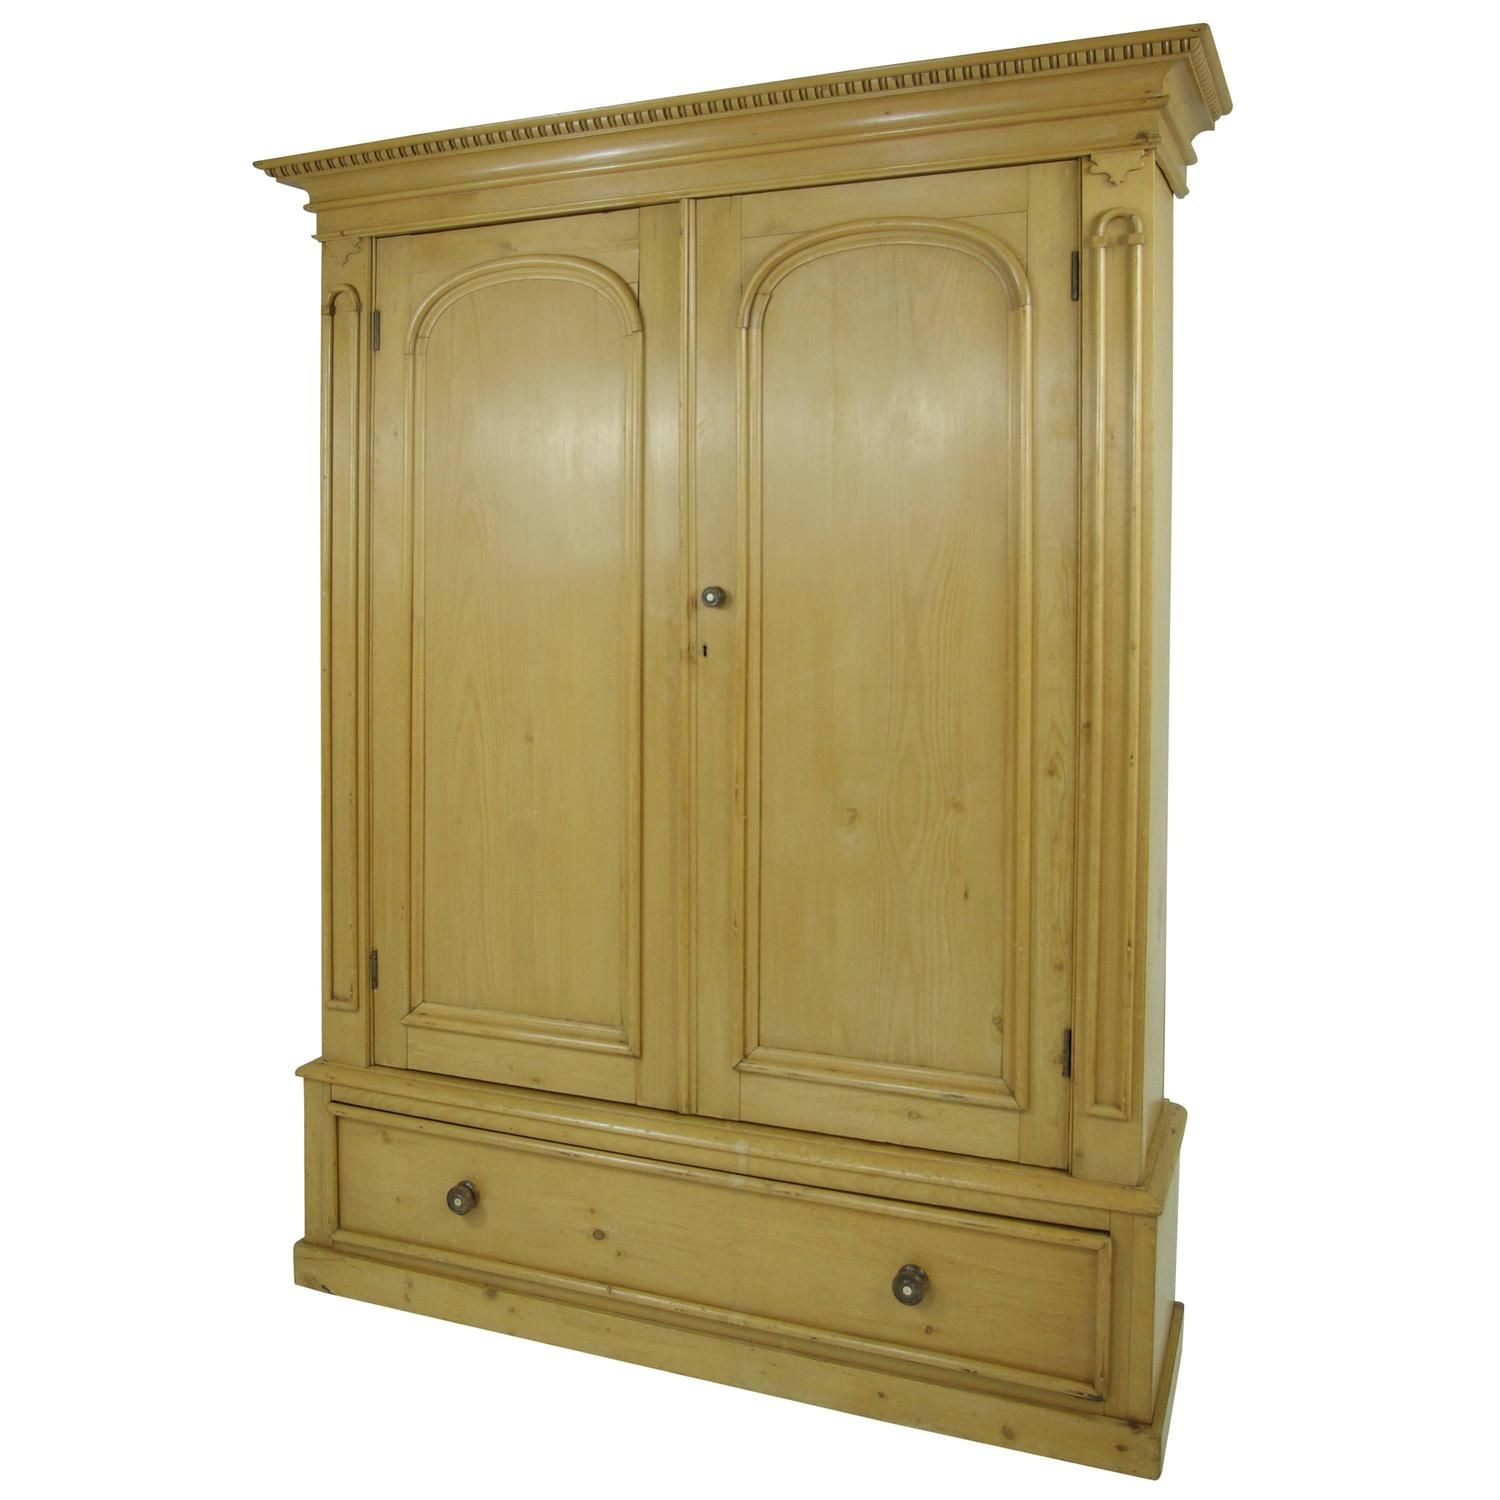 B281 Large Pine Two Door Armoire Wardrobe Display Pantry Cabinet Linen Closet From A Unique Collection Of